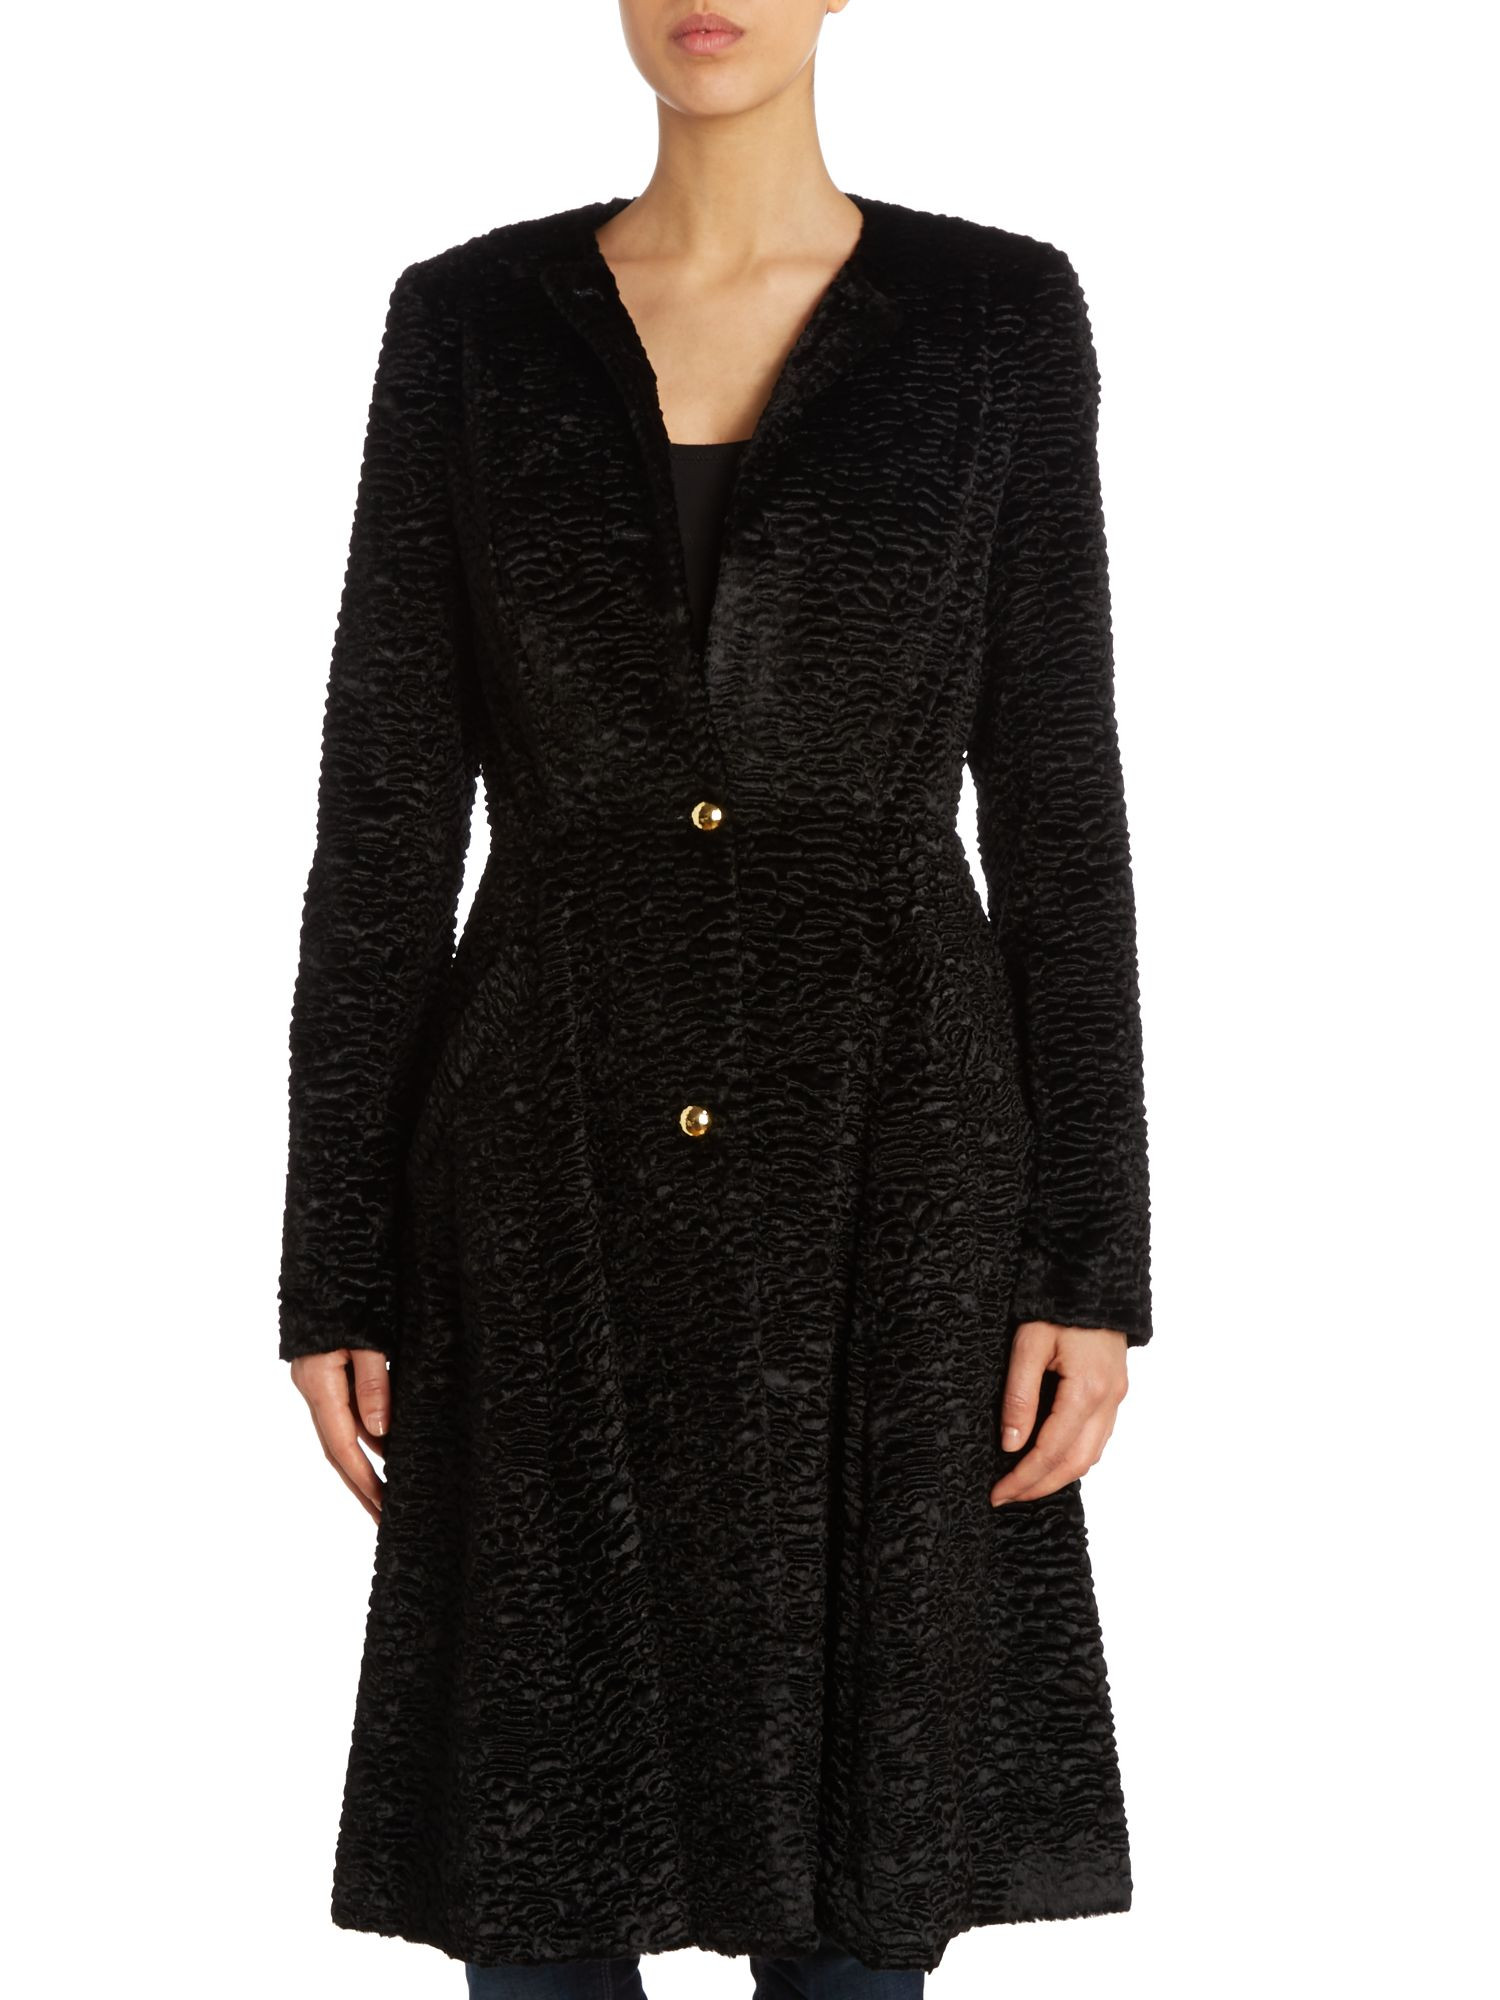 Colette full skirted coat